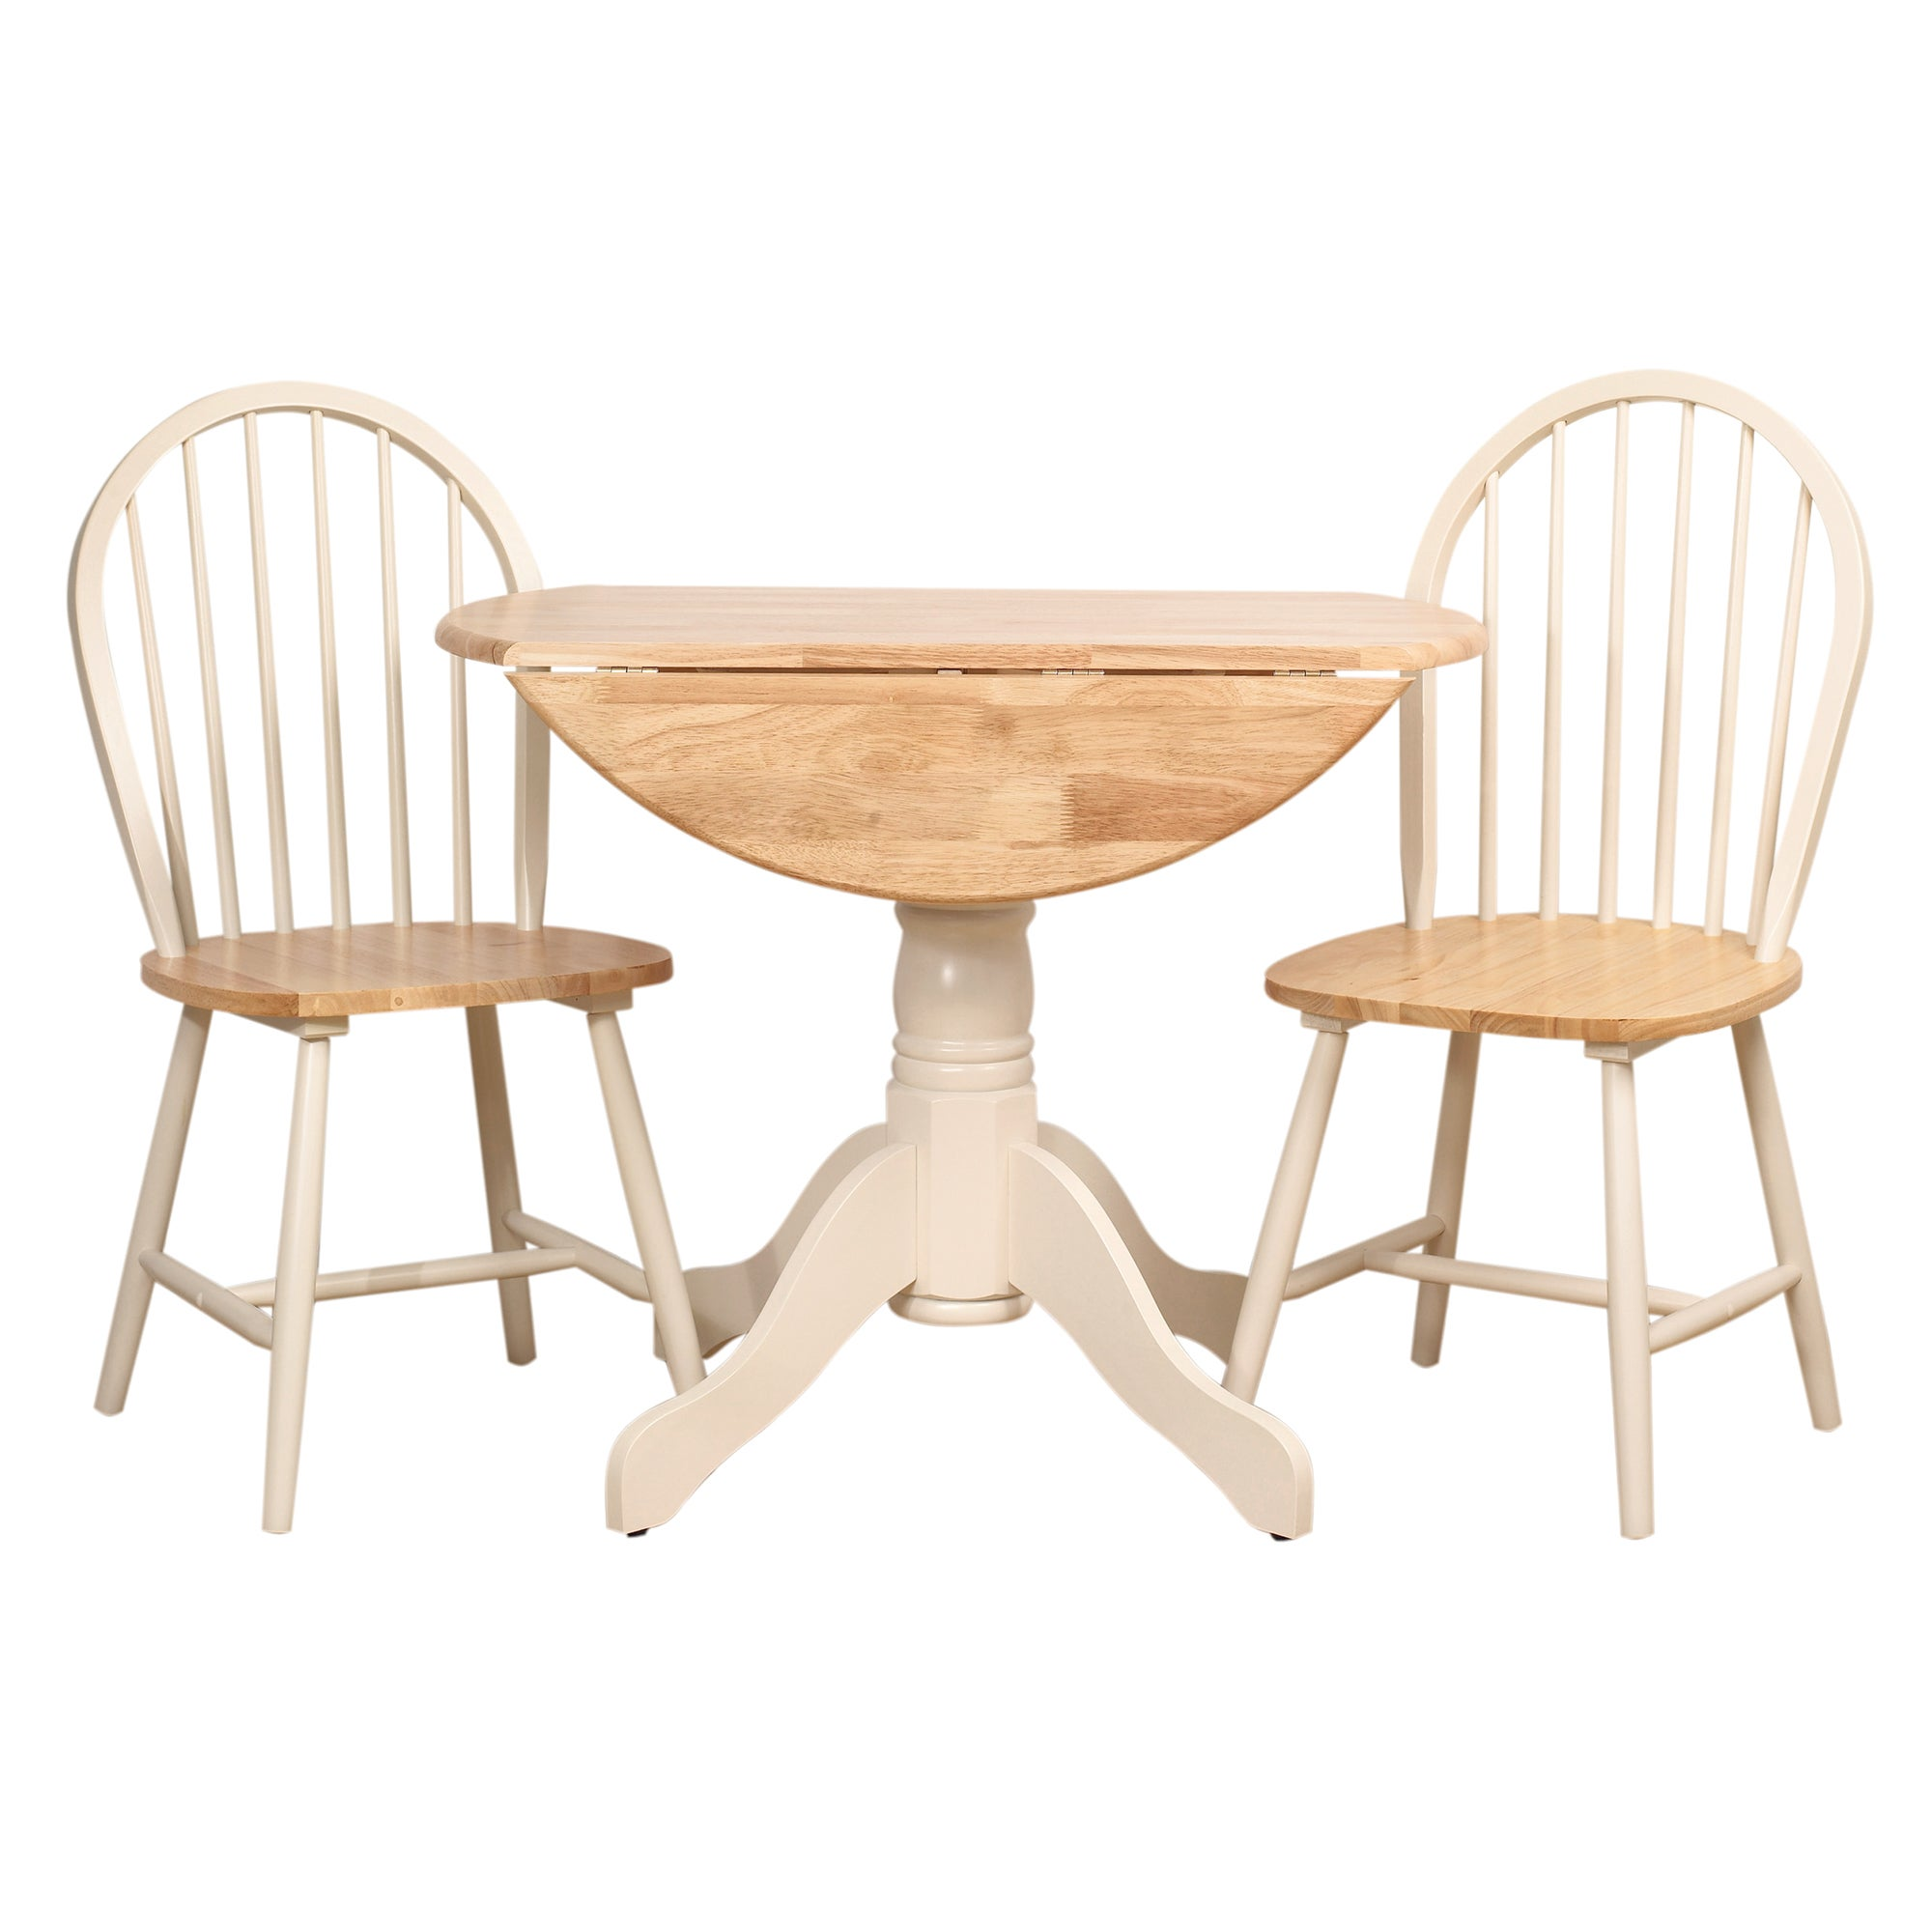 Cotswold Ivory Round Table and Chairs